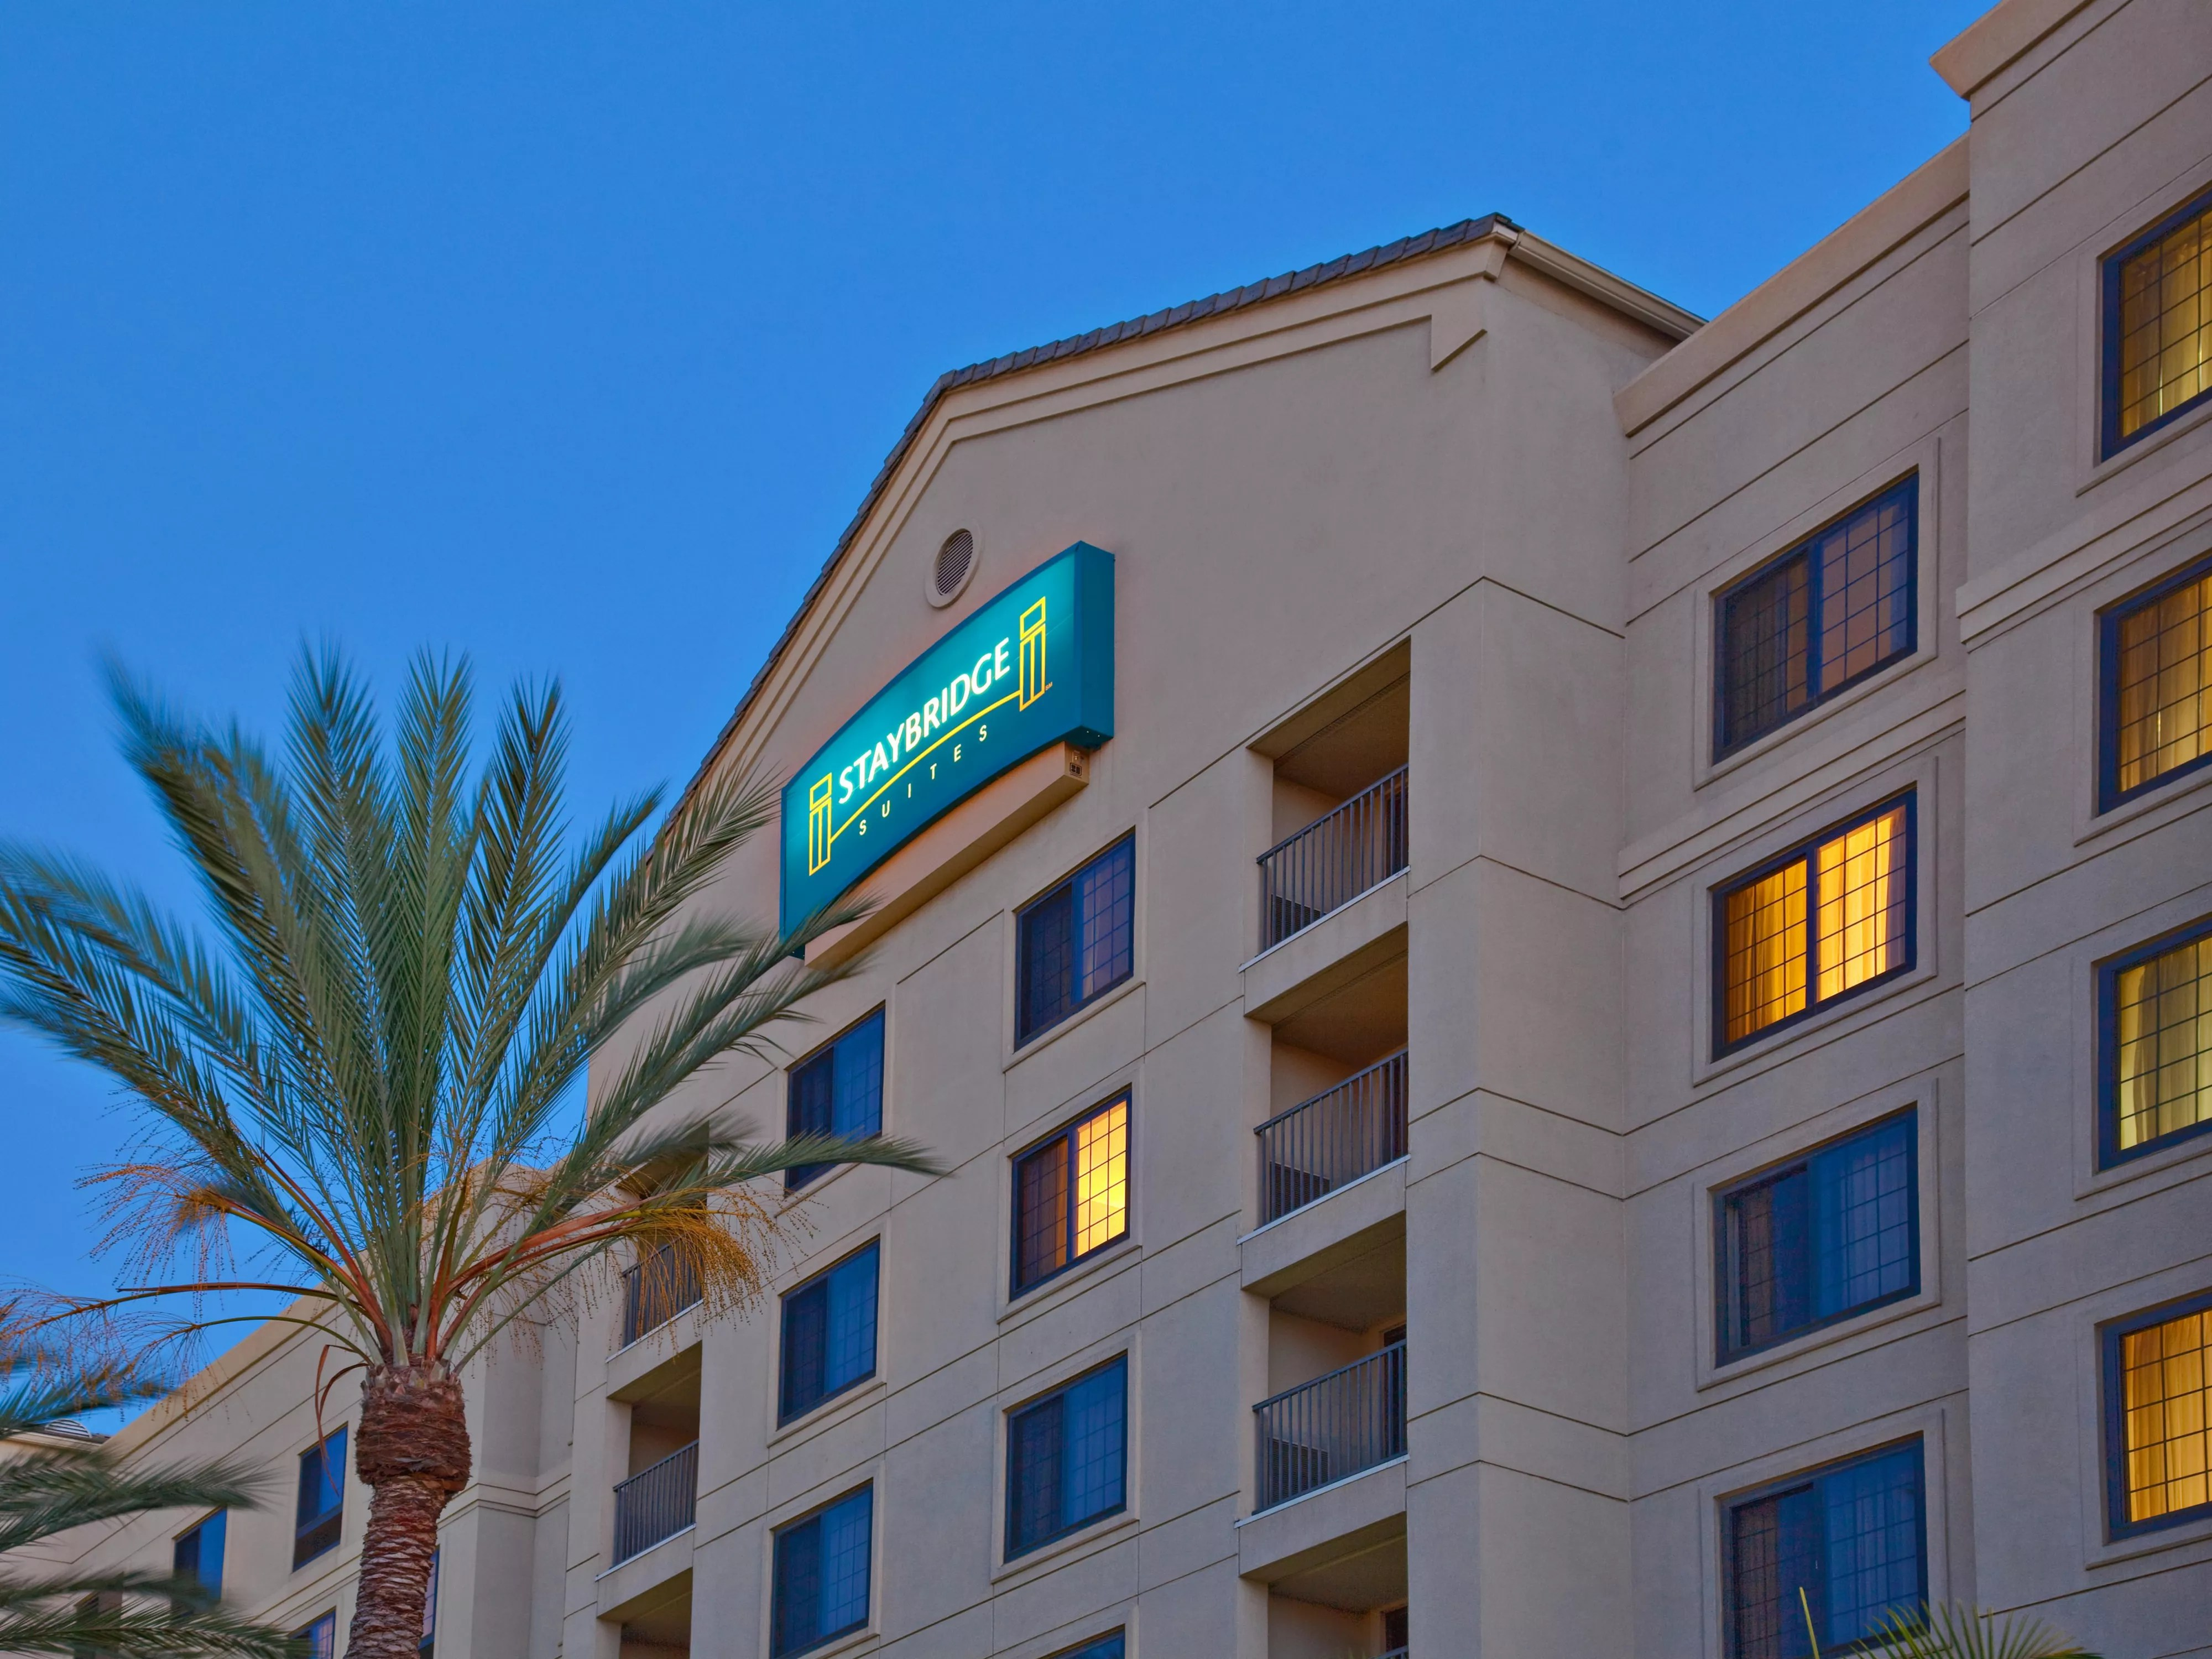 anaheim hotels with kitchen near disneyland decorating ideas on a budget staybridge suites resort area extended stay hotel in california